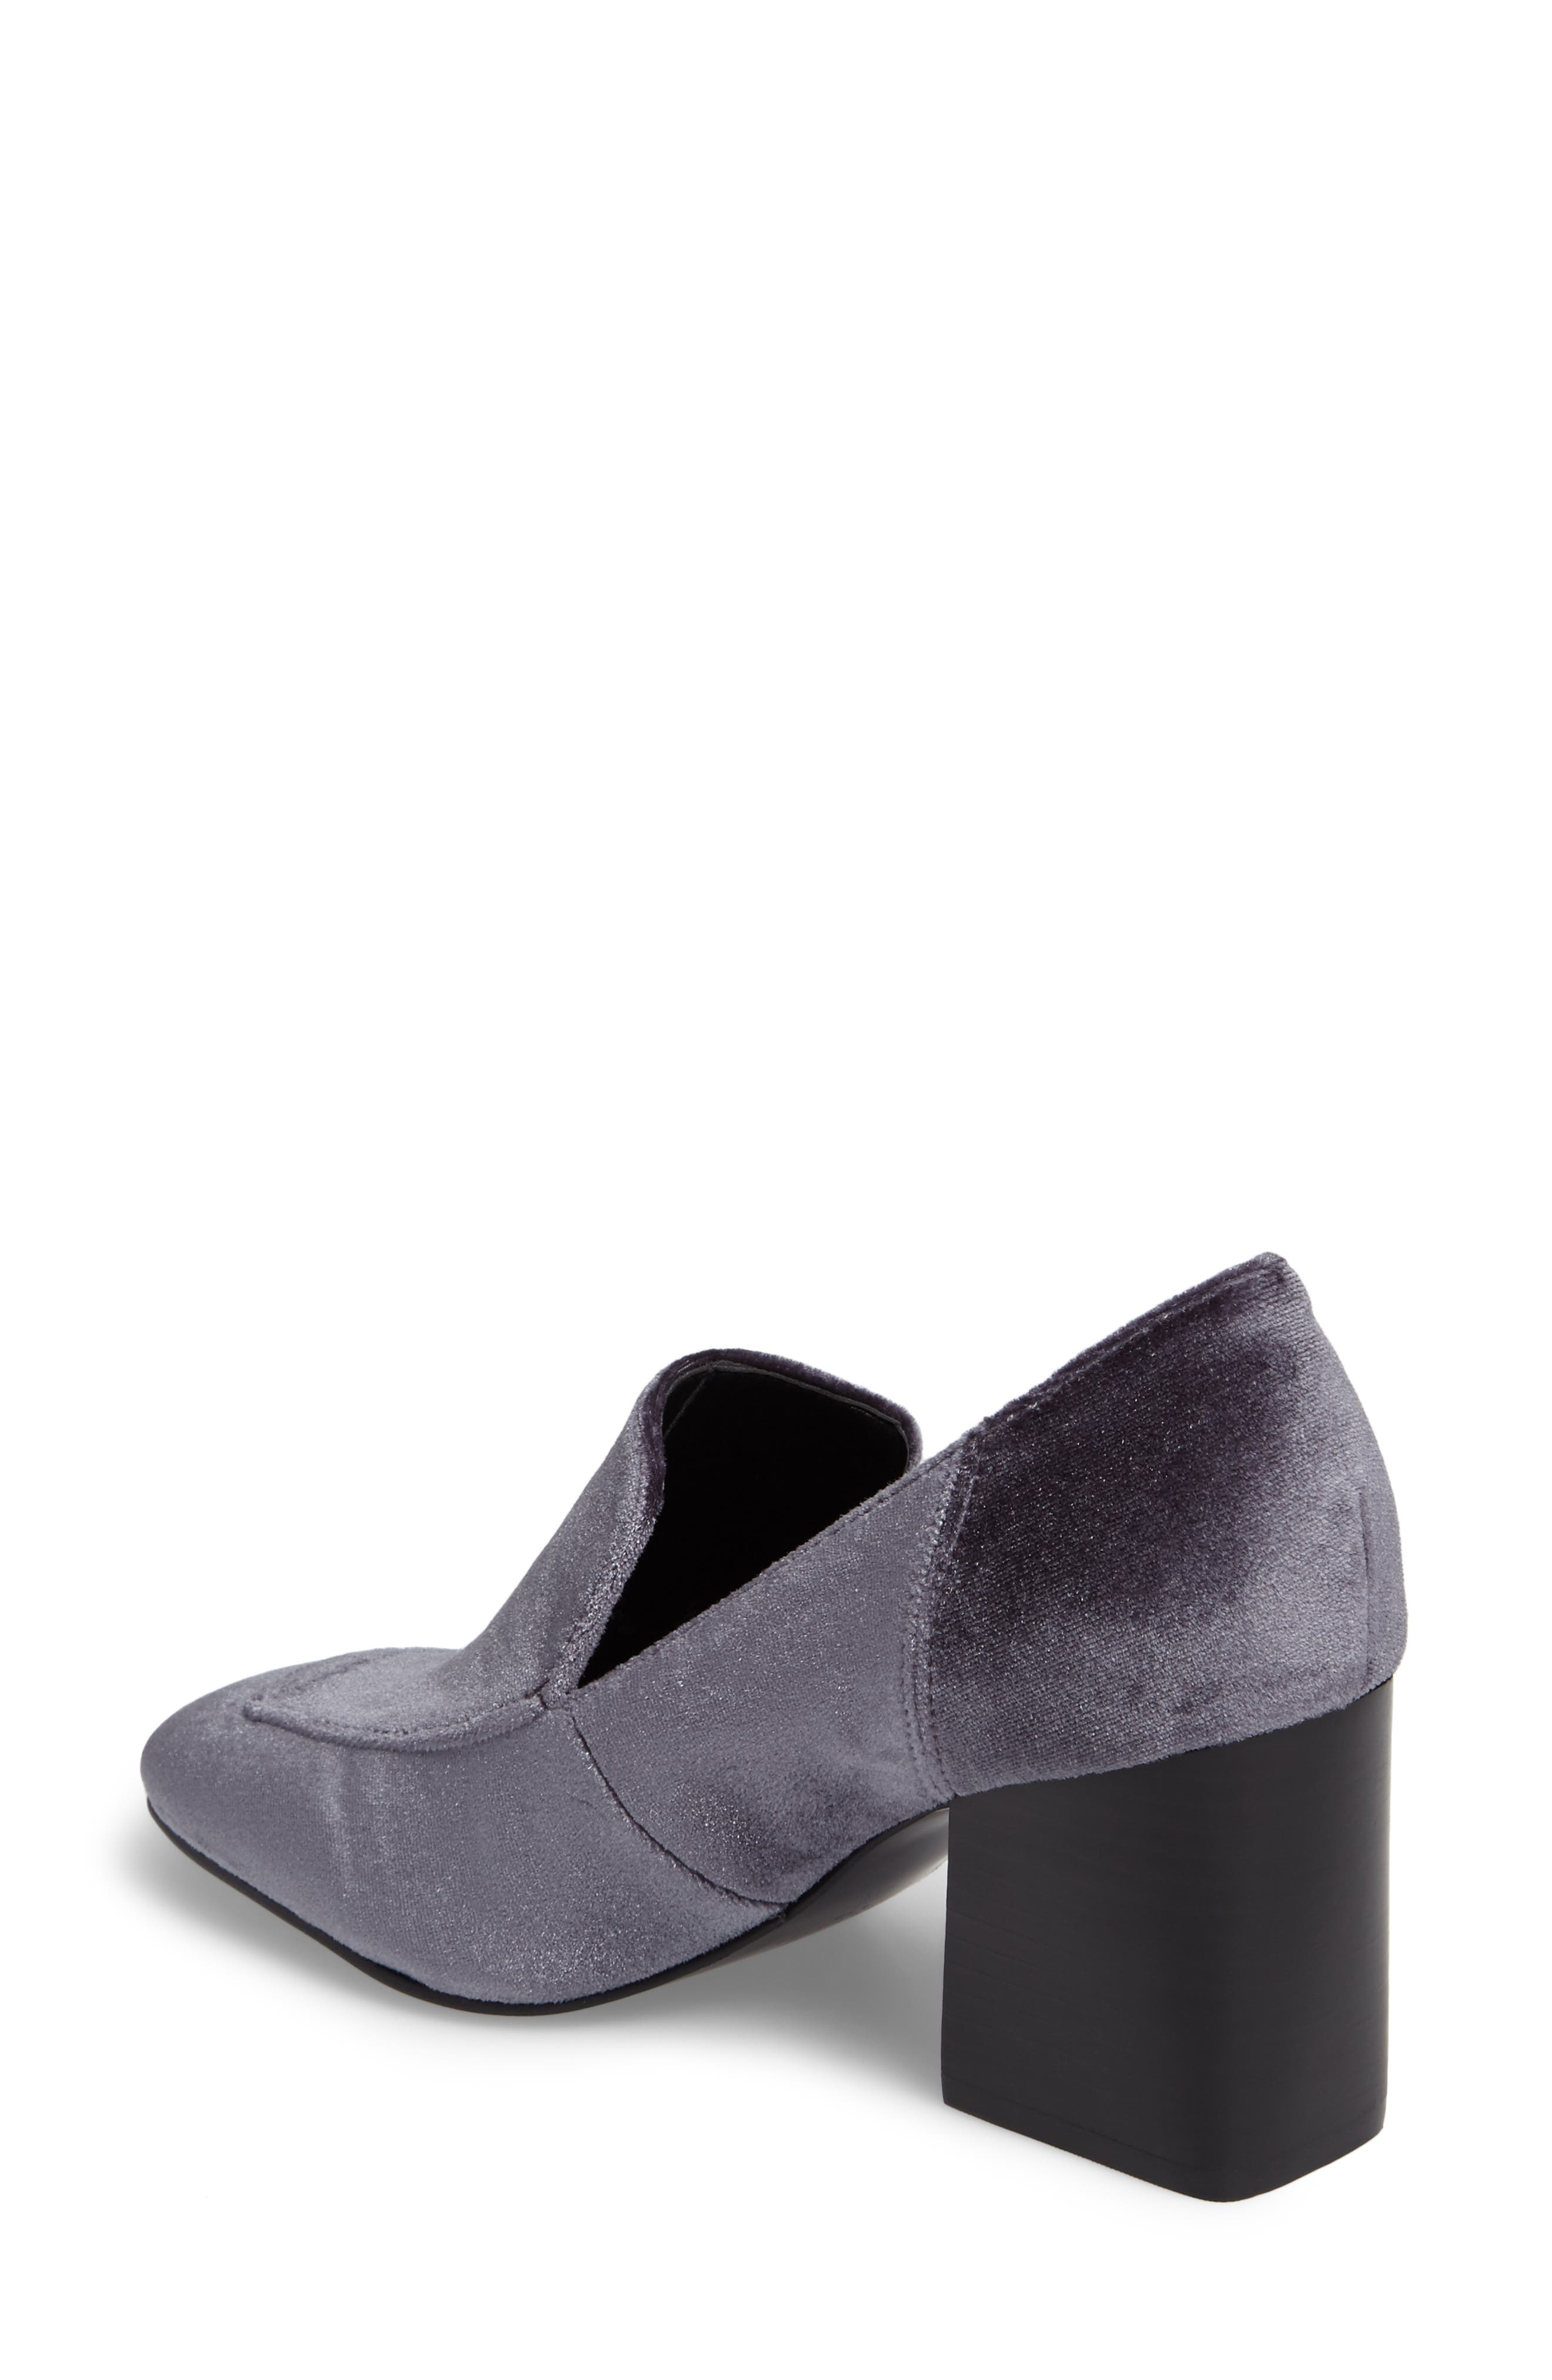 Marlo Loafer Pump,                             Alternate thumbnail 8, color,